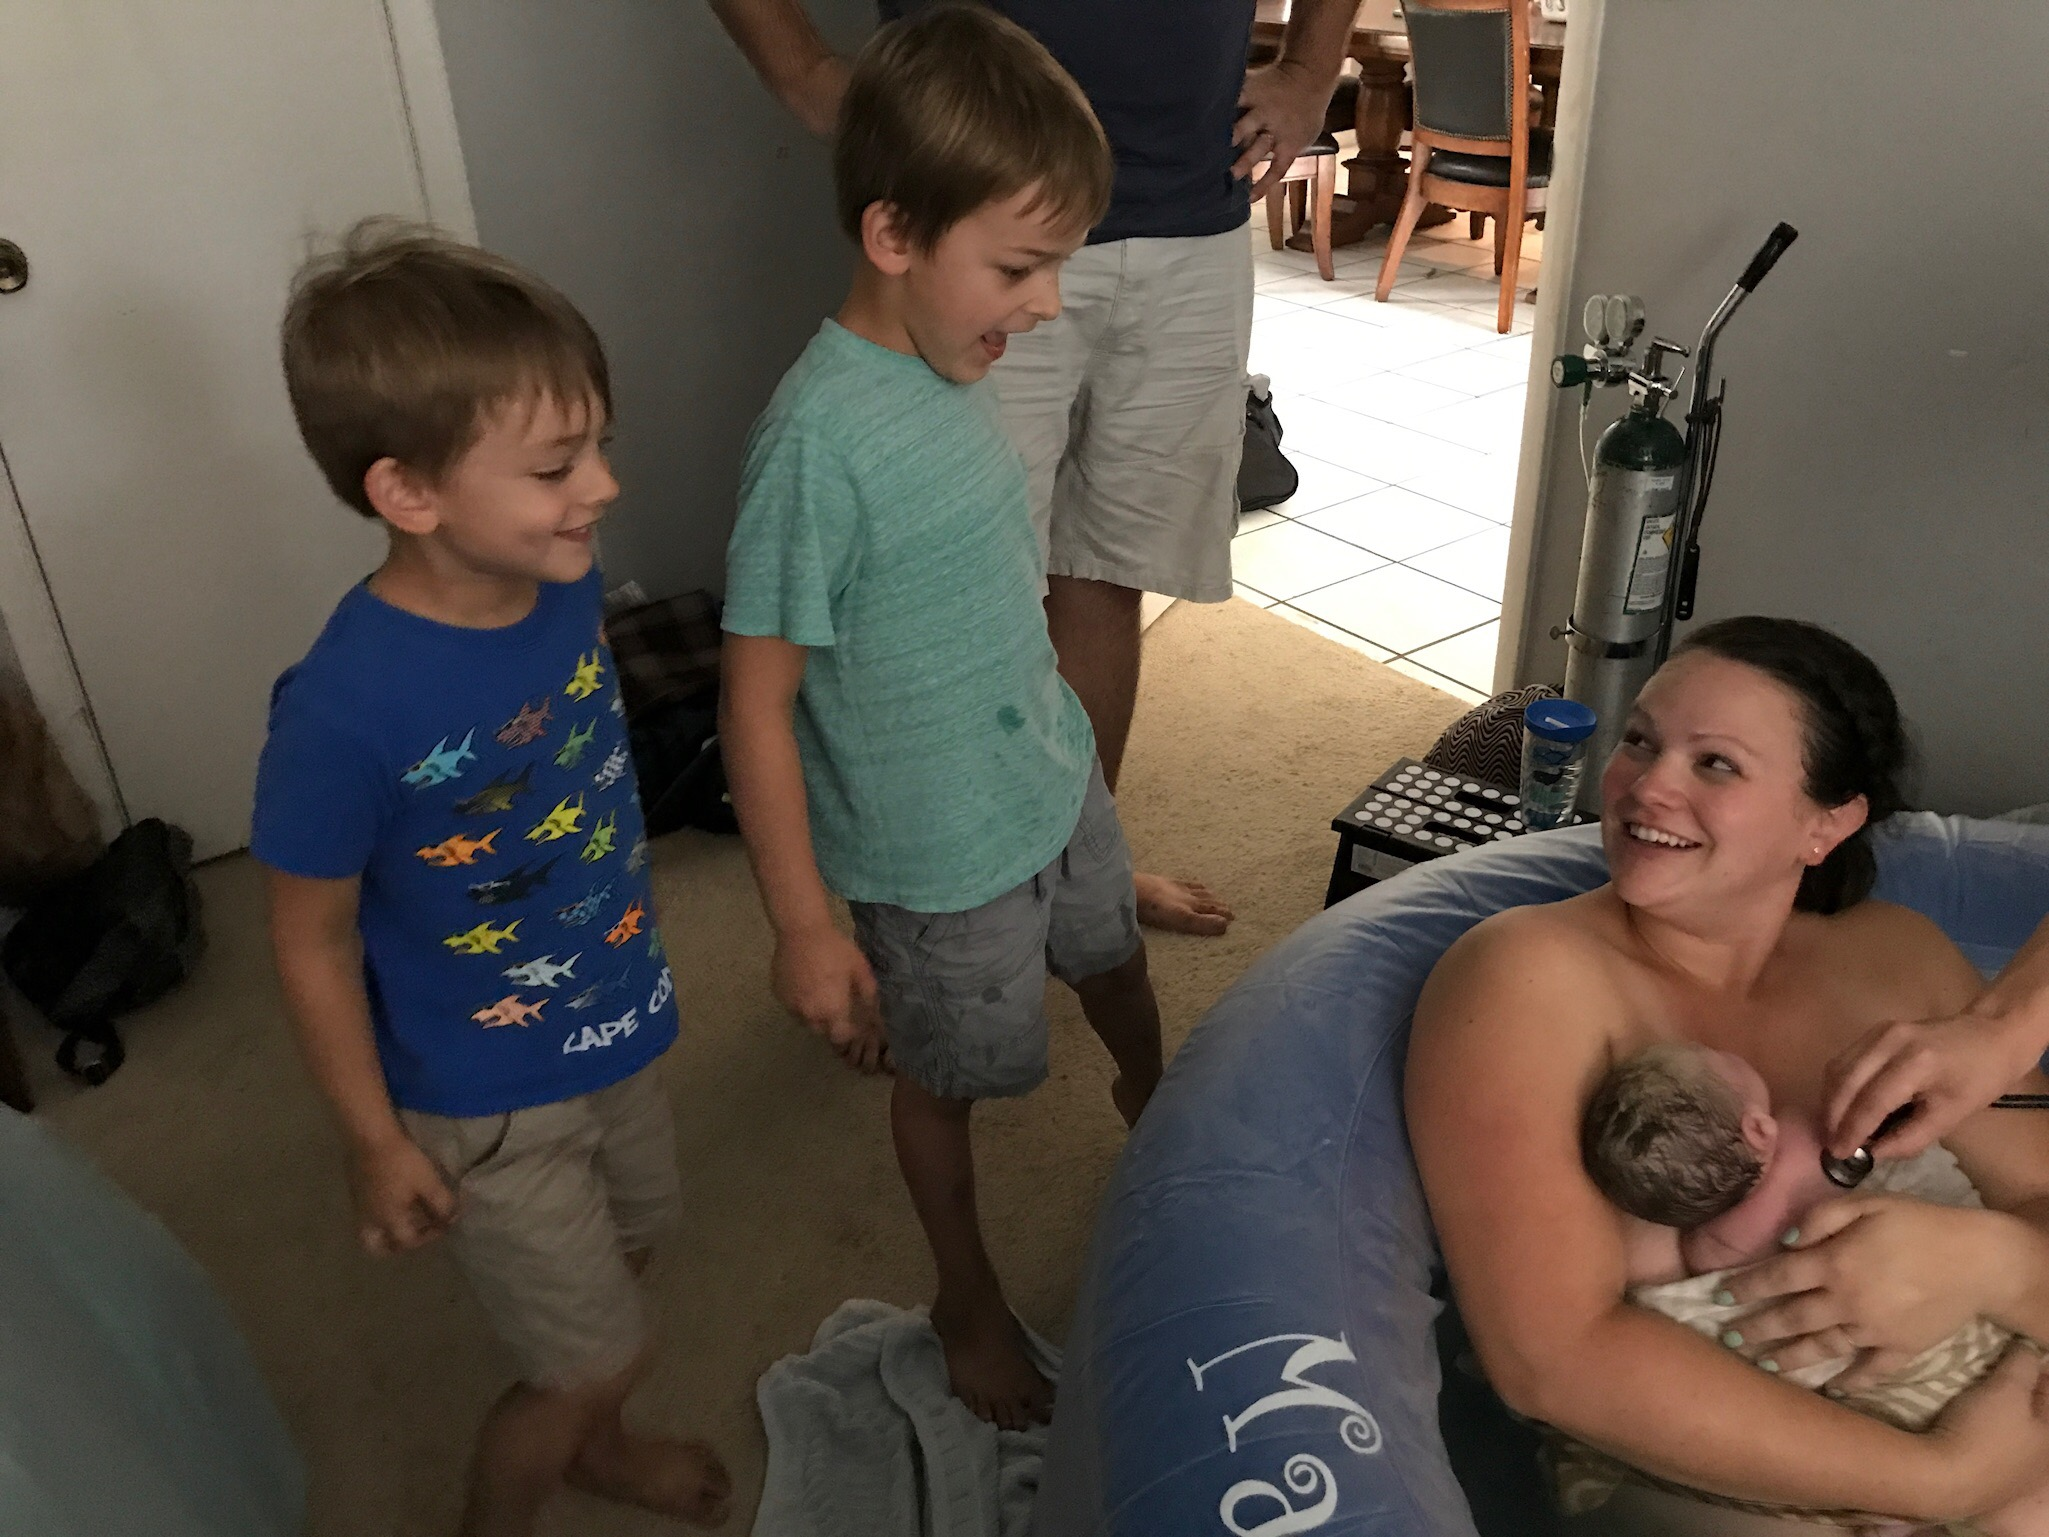 The boys meeting Evan just minutes after his birth.